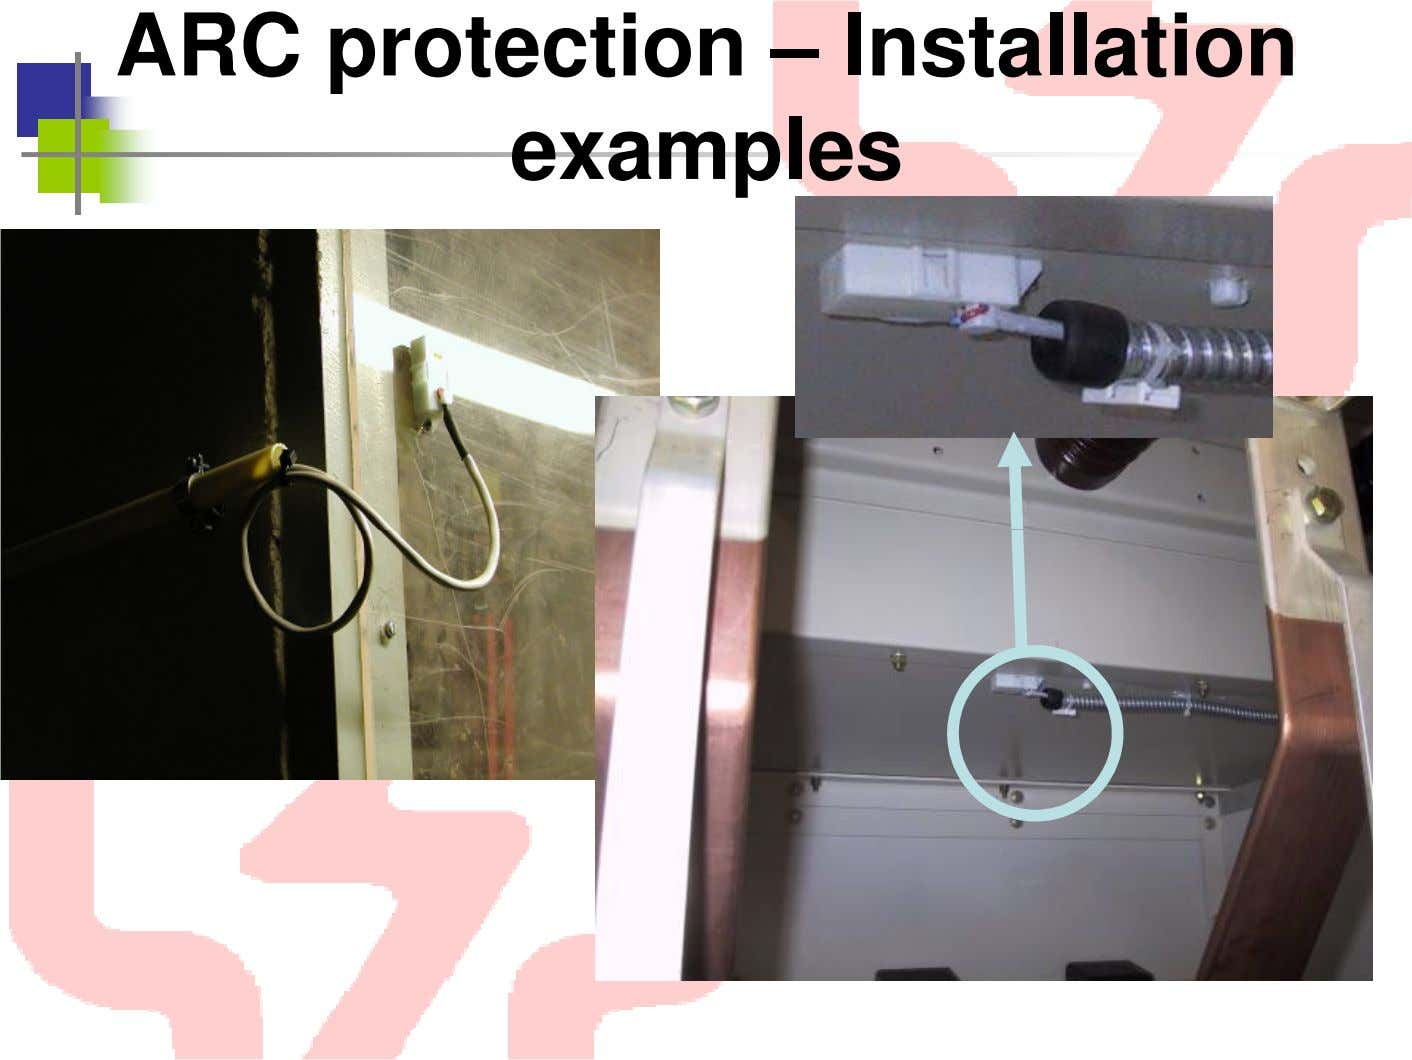 ARC protection – Installation examples